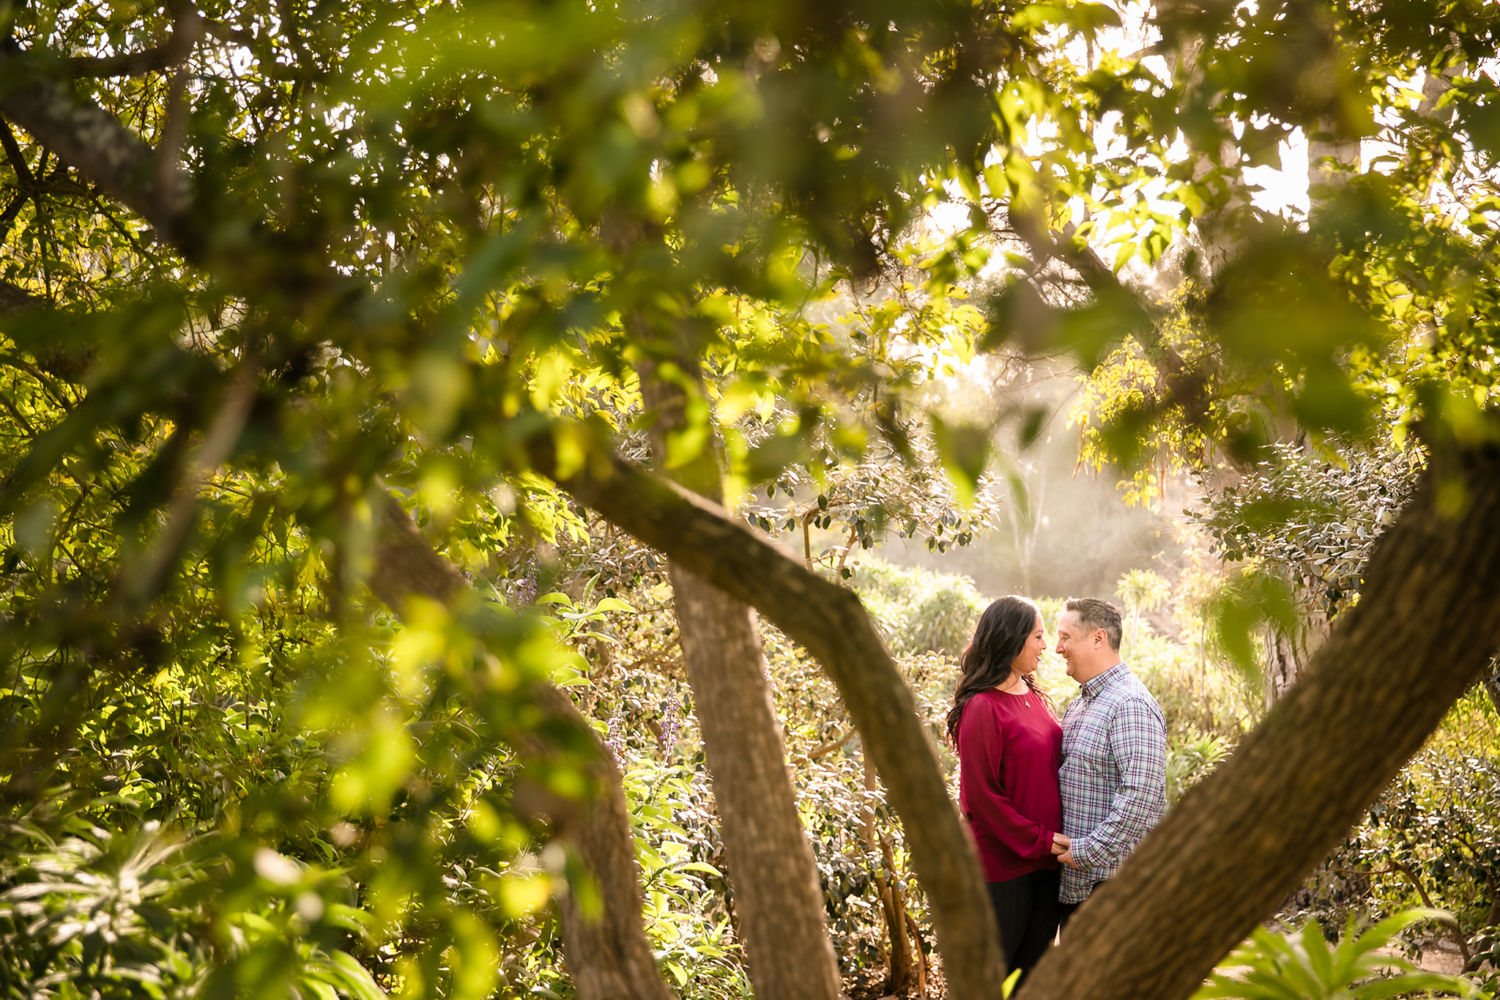 Shipley Nature Center Huntington Beach Engagement Session 04